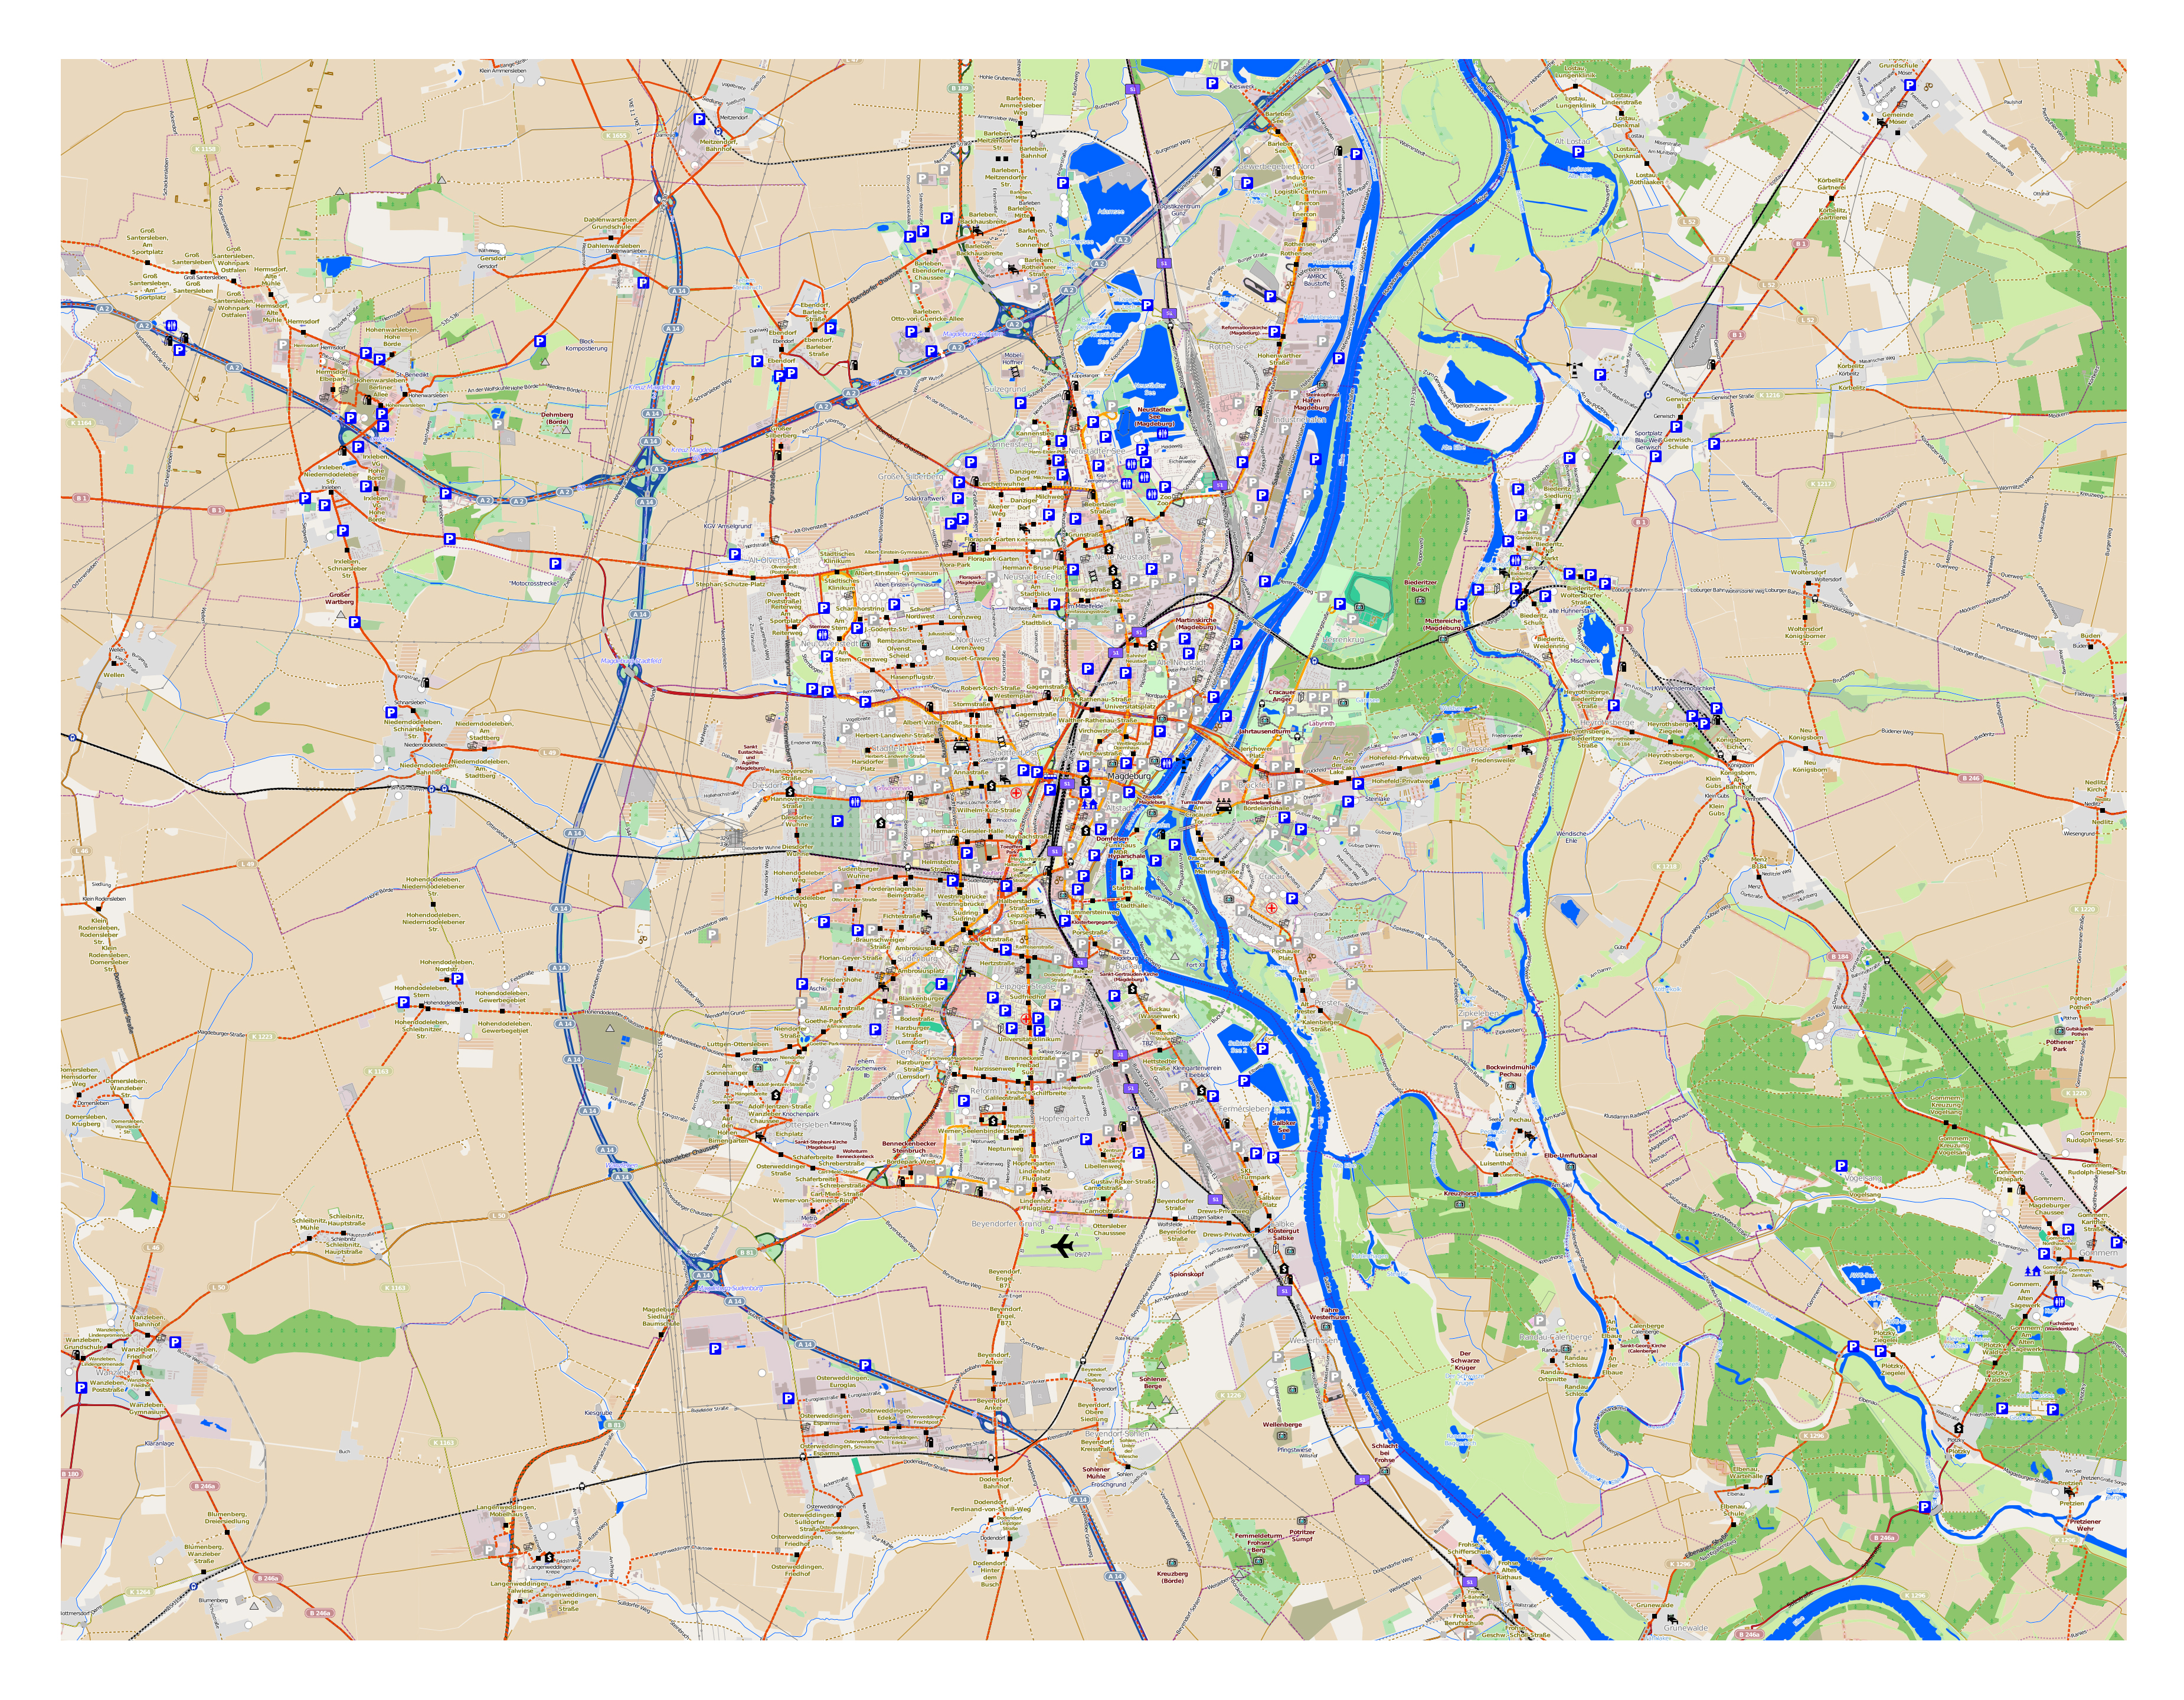 Large Detailed Map Of Magdeburg City And Its Surroundings